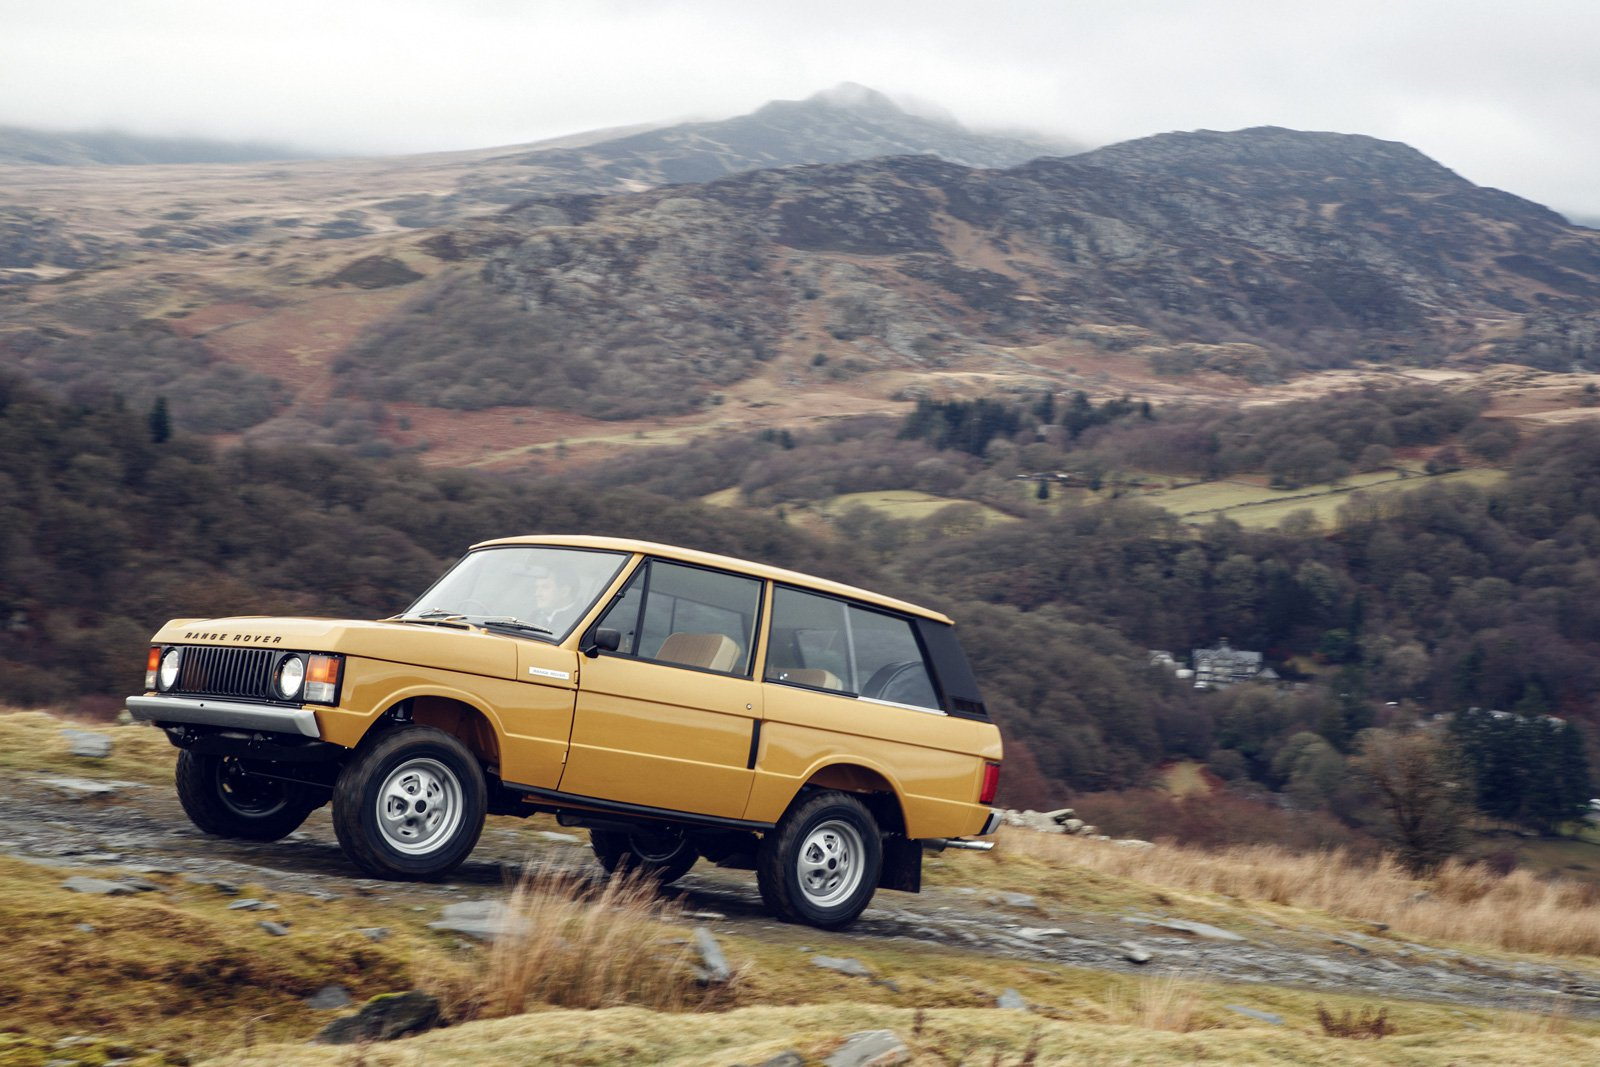 American Expedition Vehicles >> Land Rover to Release Brand New 1978 3-Door Range Rover ...